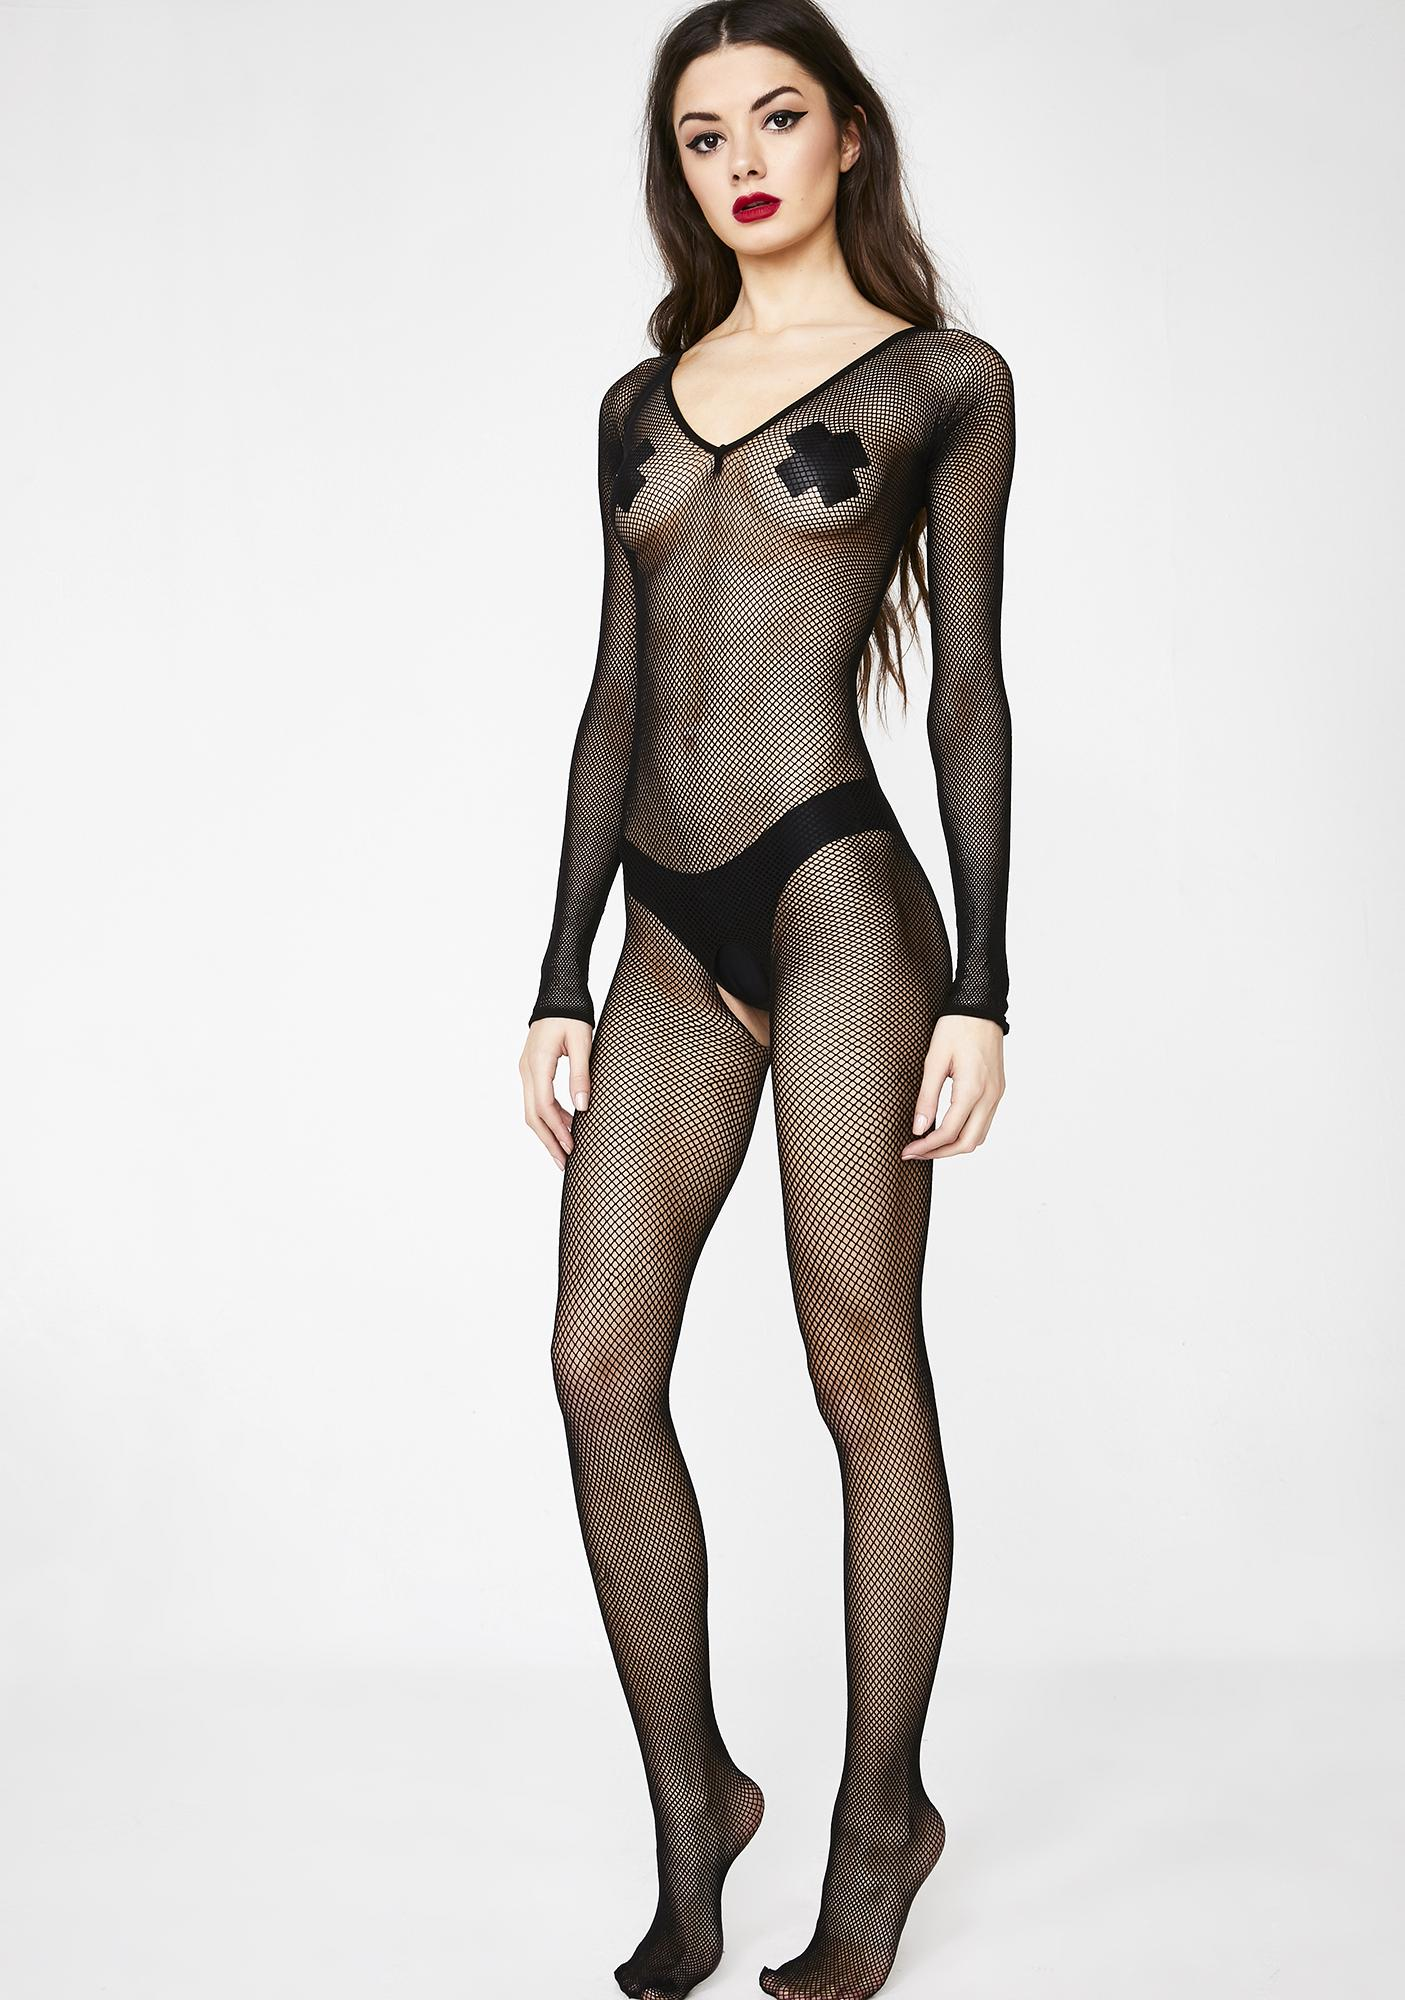 72dafd4bbe Black Fishnet Crotchless Bodystocking